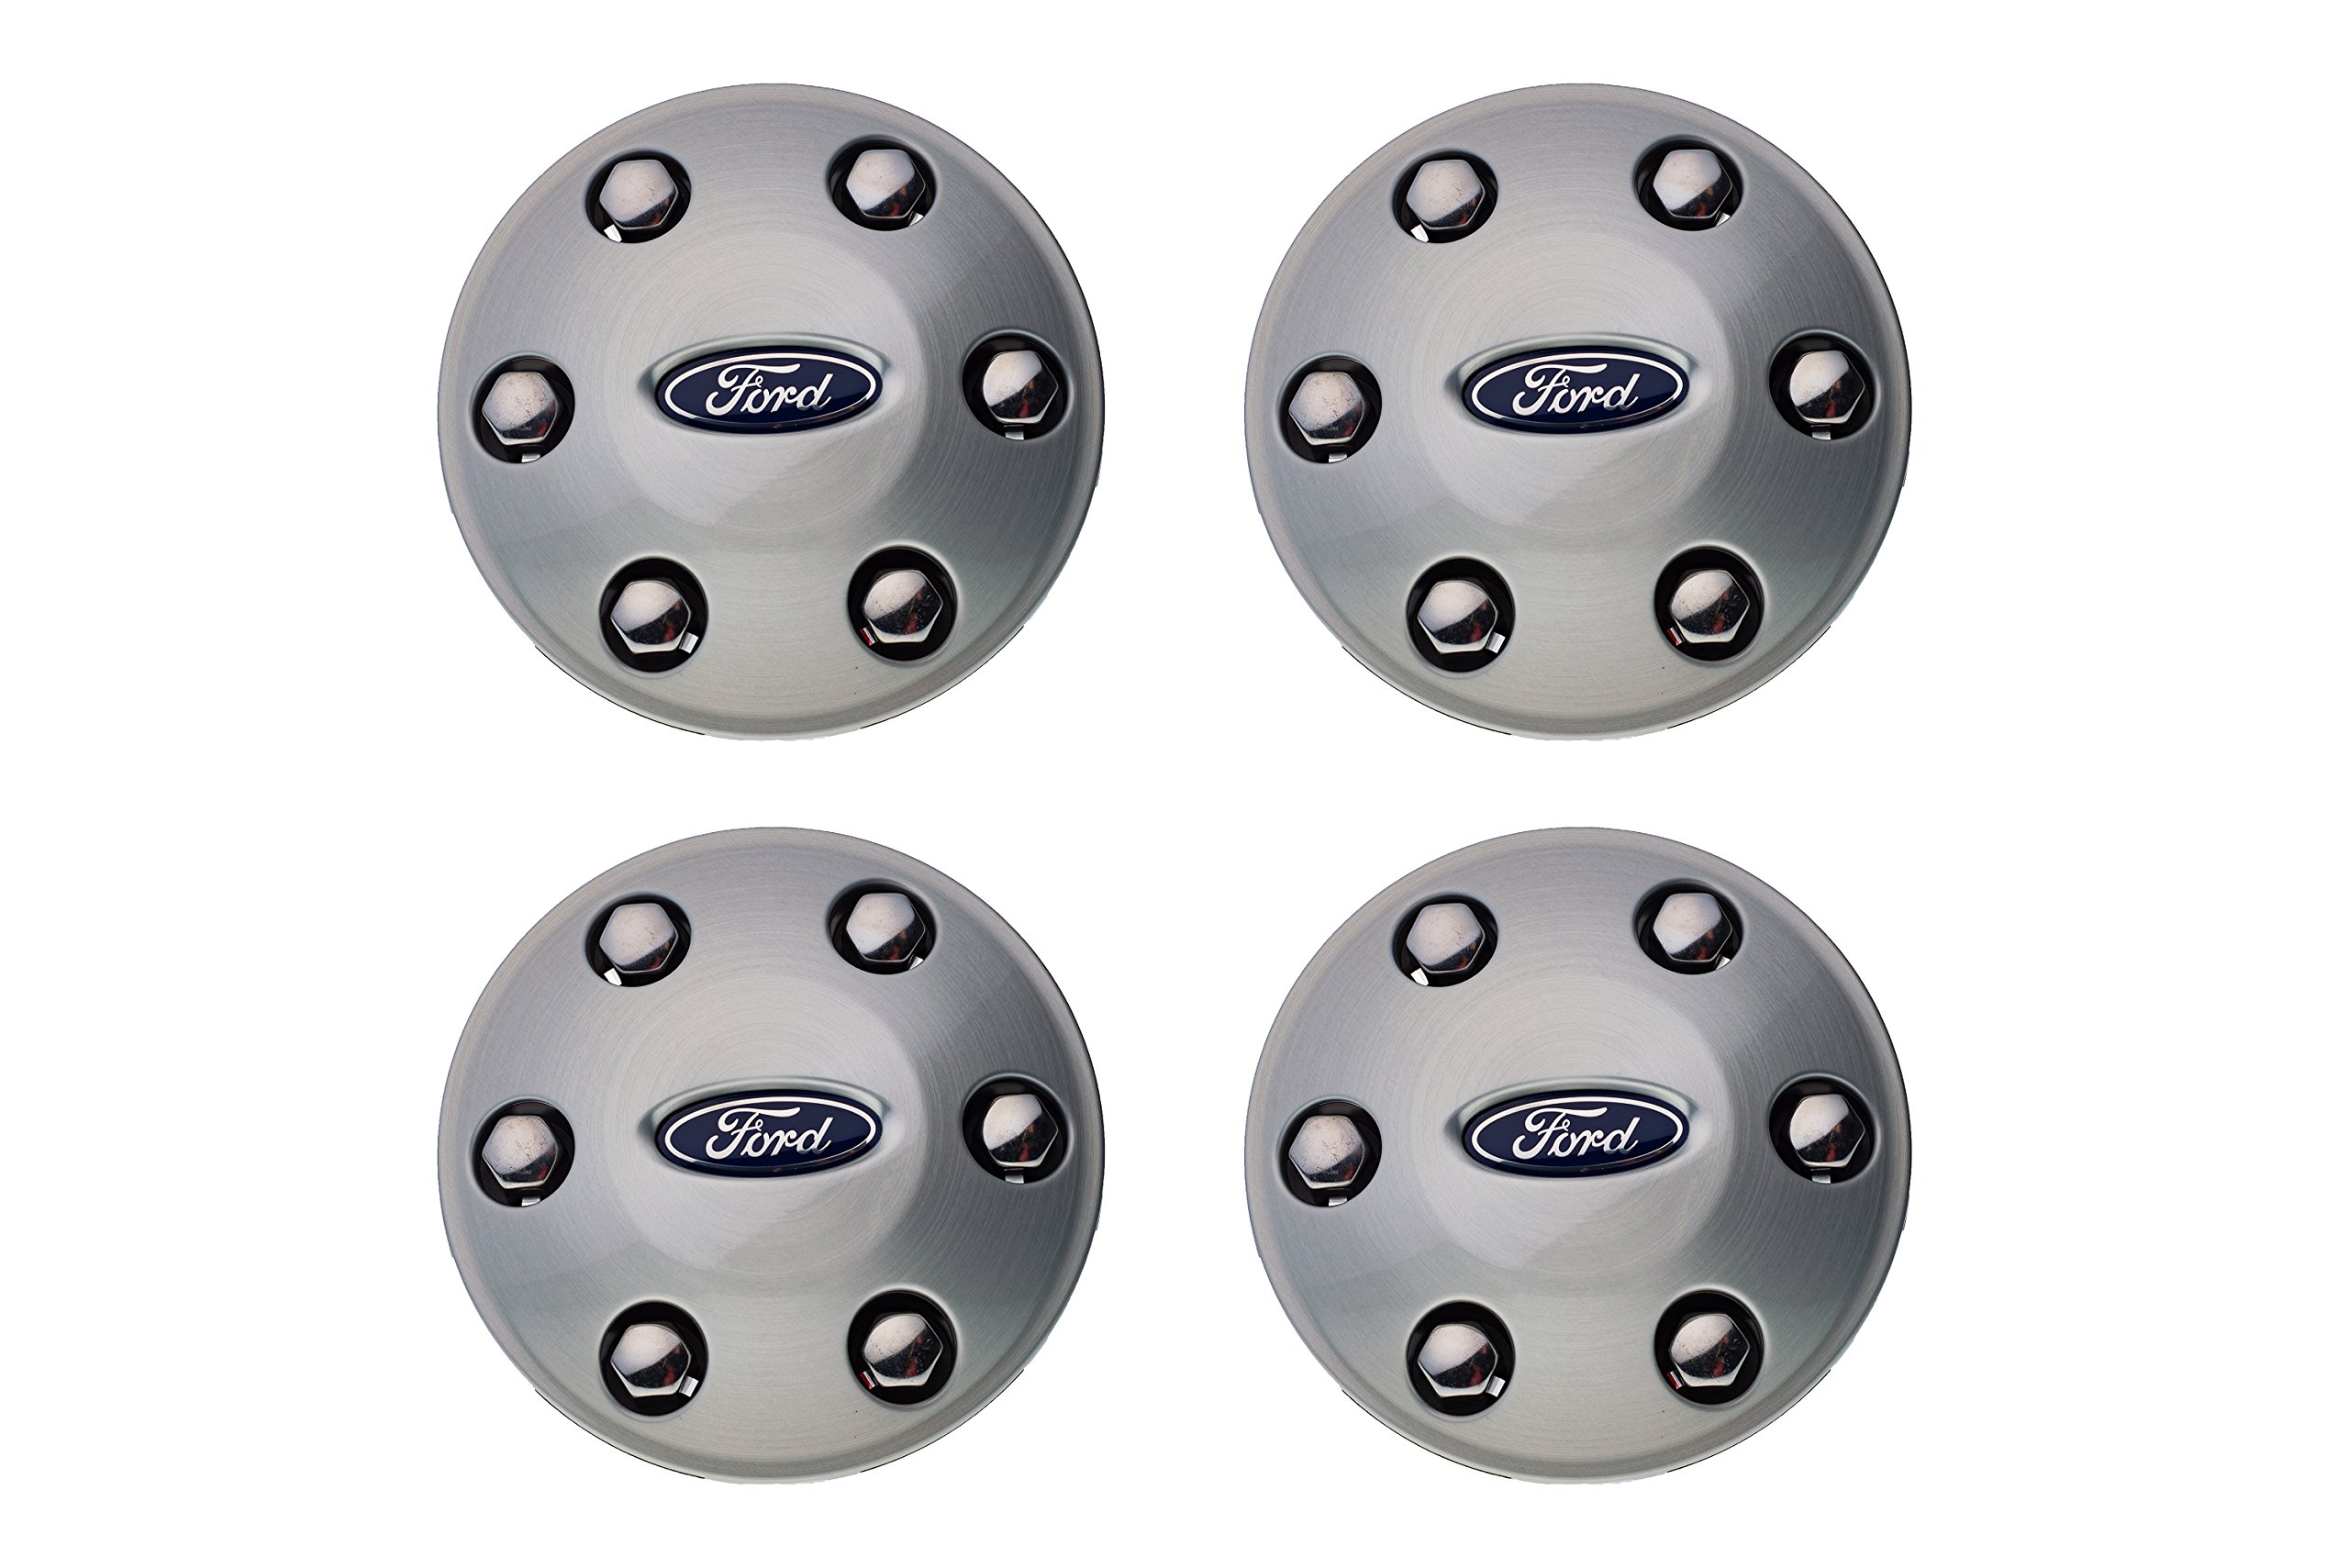 04-14 Ford F-150 17'' 18'' 20'' 6 Lug Aluminum Wheel Hub Cover Center Cap Set OEM